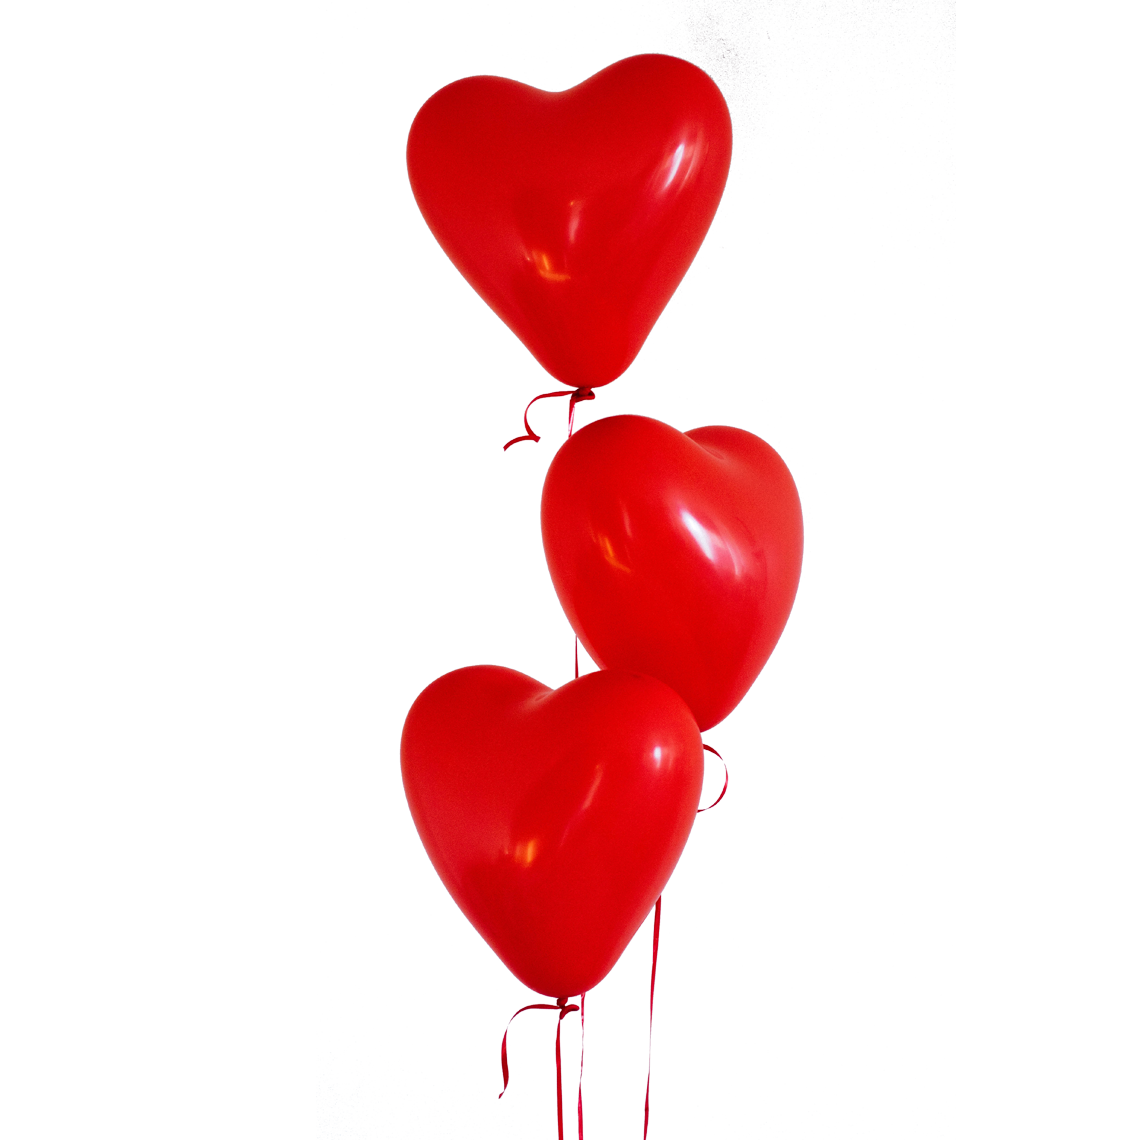 Free Download High Quality Heart Balloon Png Transparent Background Image Valentine Heart It Is Best To Use In Makin Heart Balloons Background Images Balloons